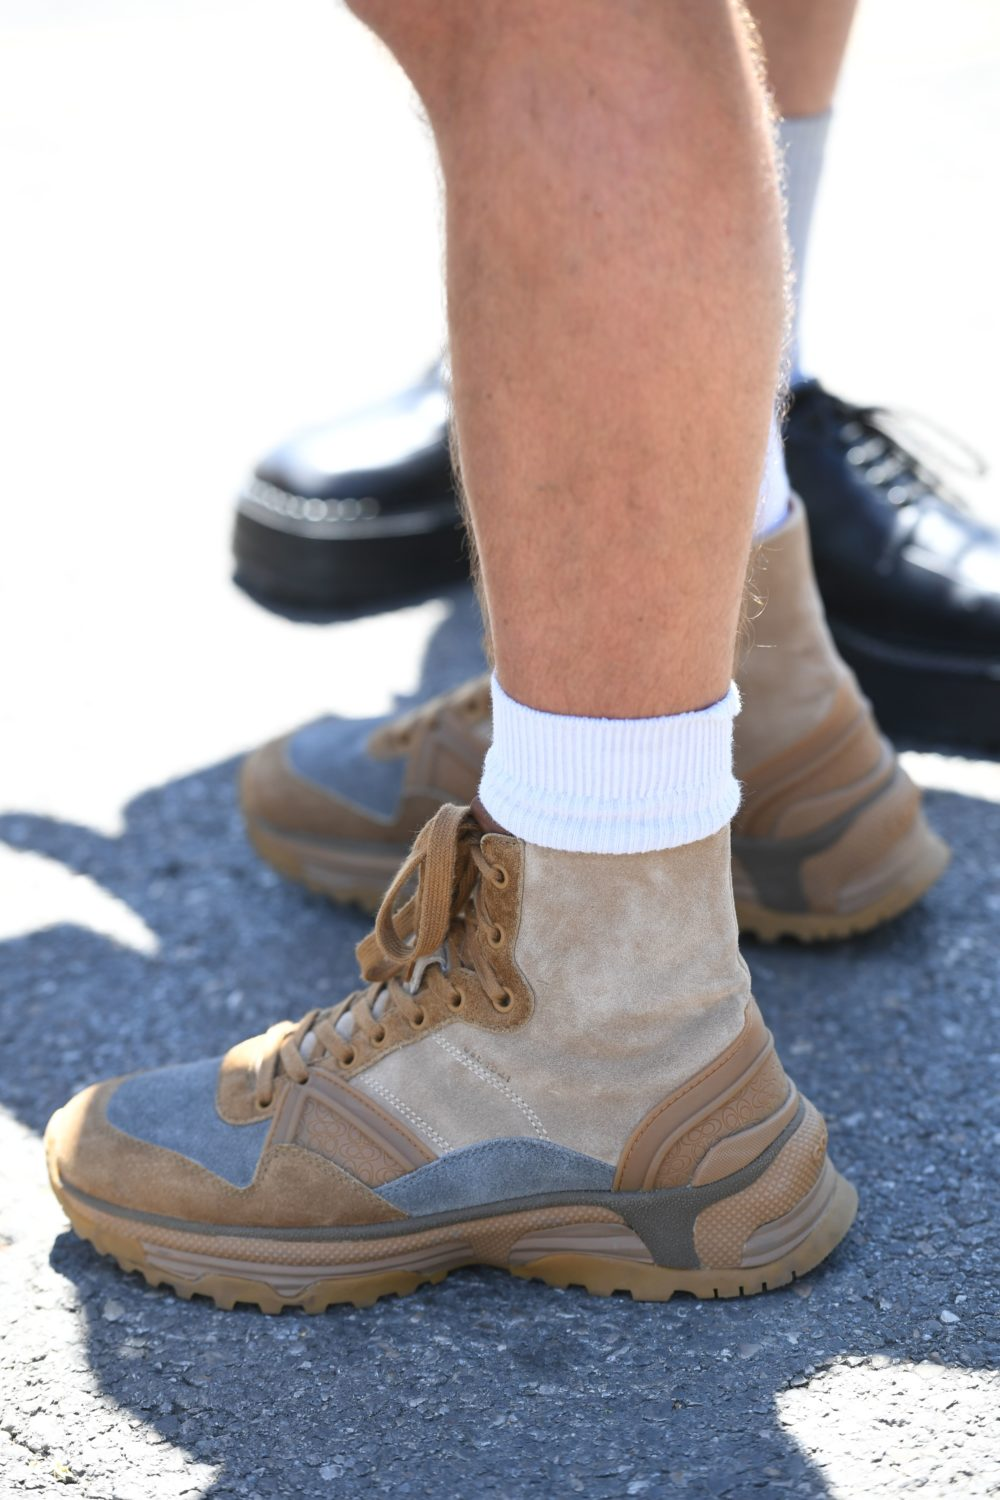 Proof that hikers are taking their turn in the fashion spotlight, one stylesetter is dressed to hit the trails after taking in the latest trends in men's wear.